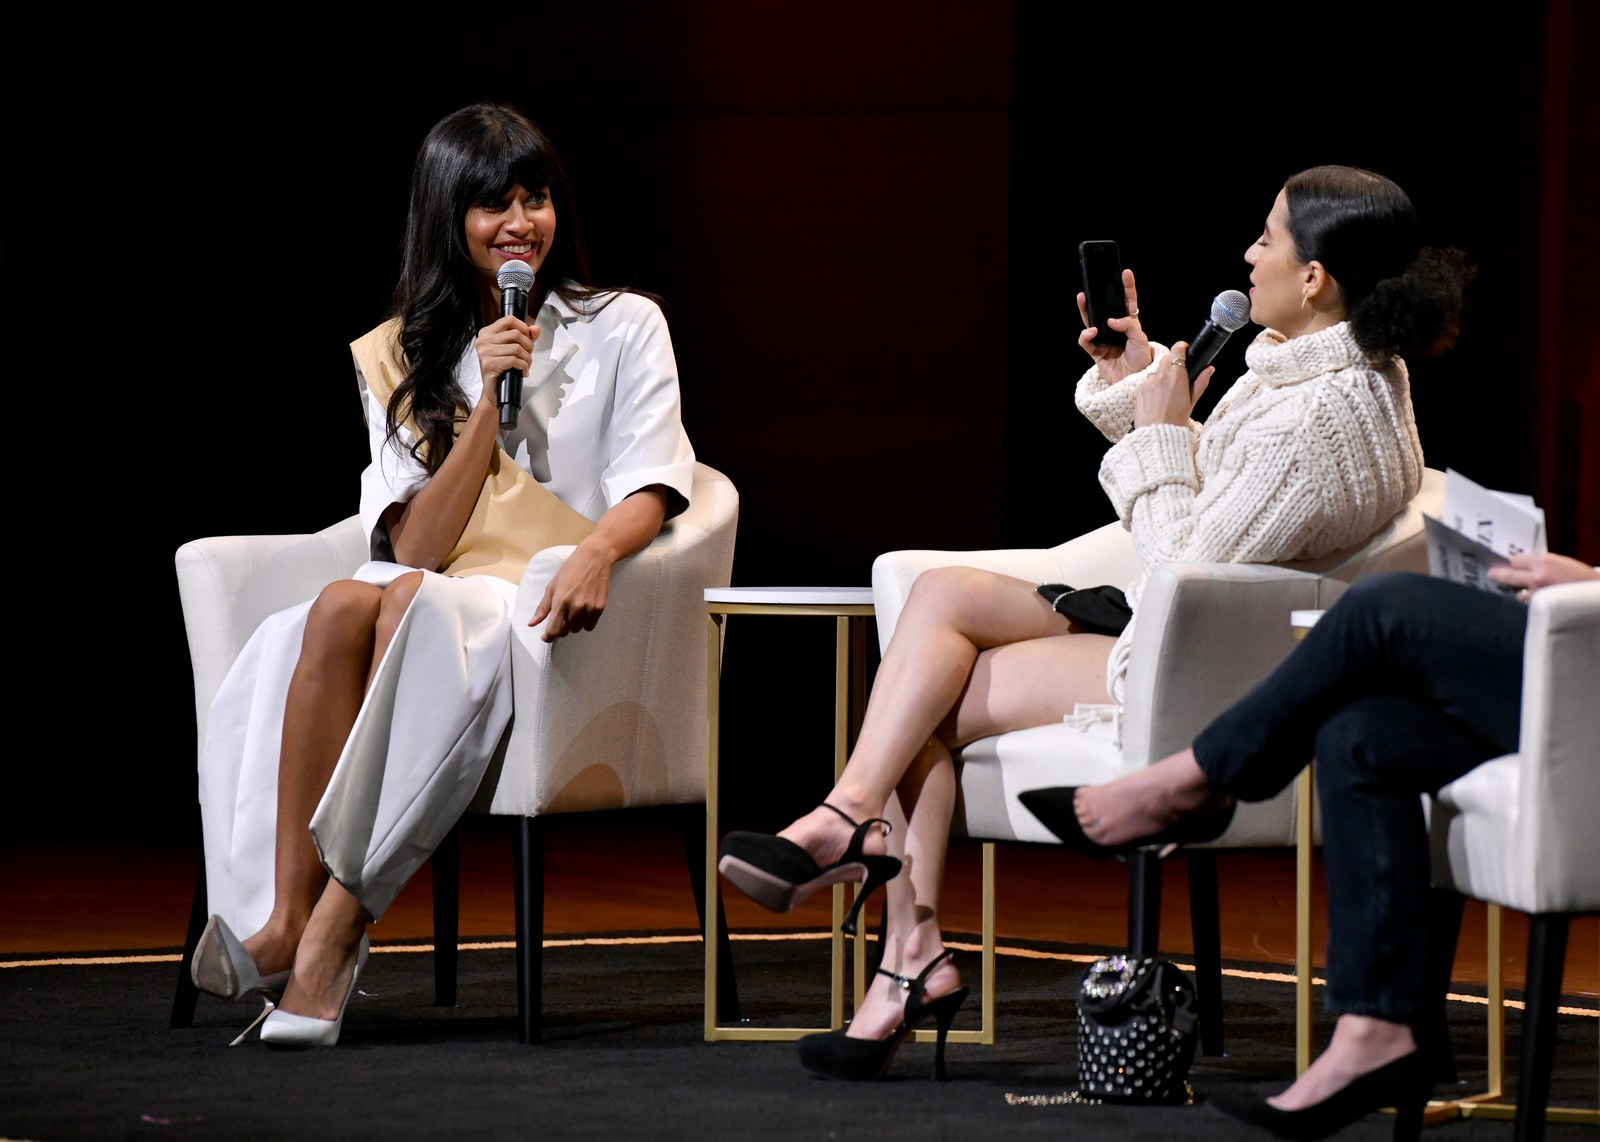 Jameela Jamil and Ilana Glazer speak onstage during the Way More Than Funny panel at the 2019 Glamour Women Of The Year...